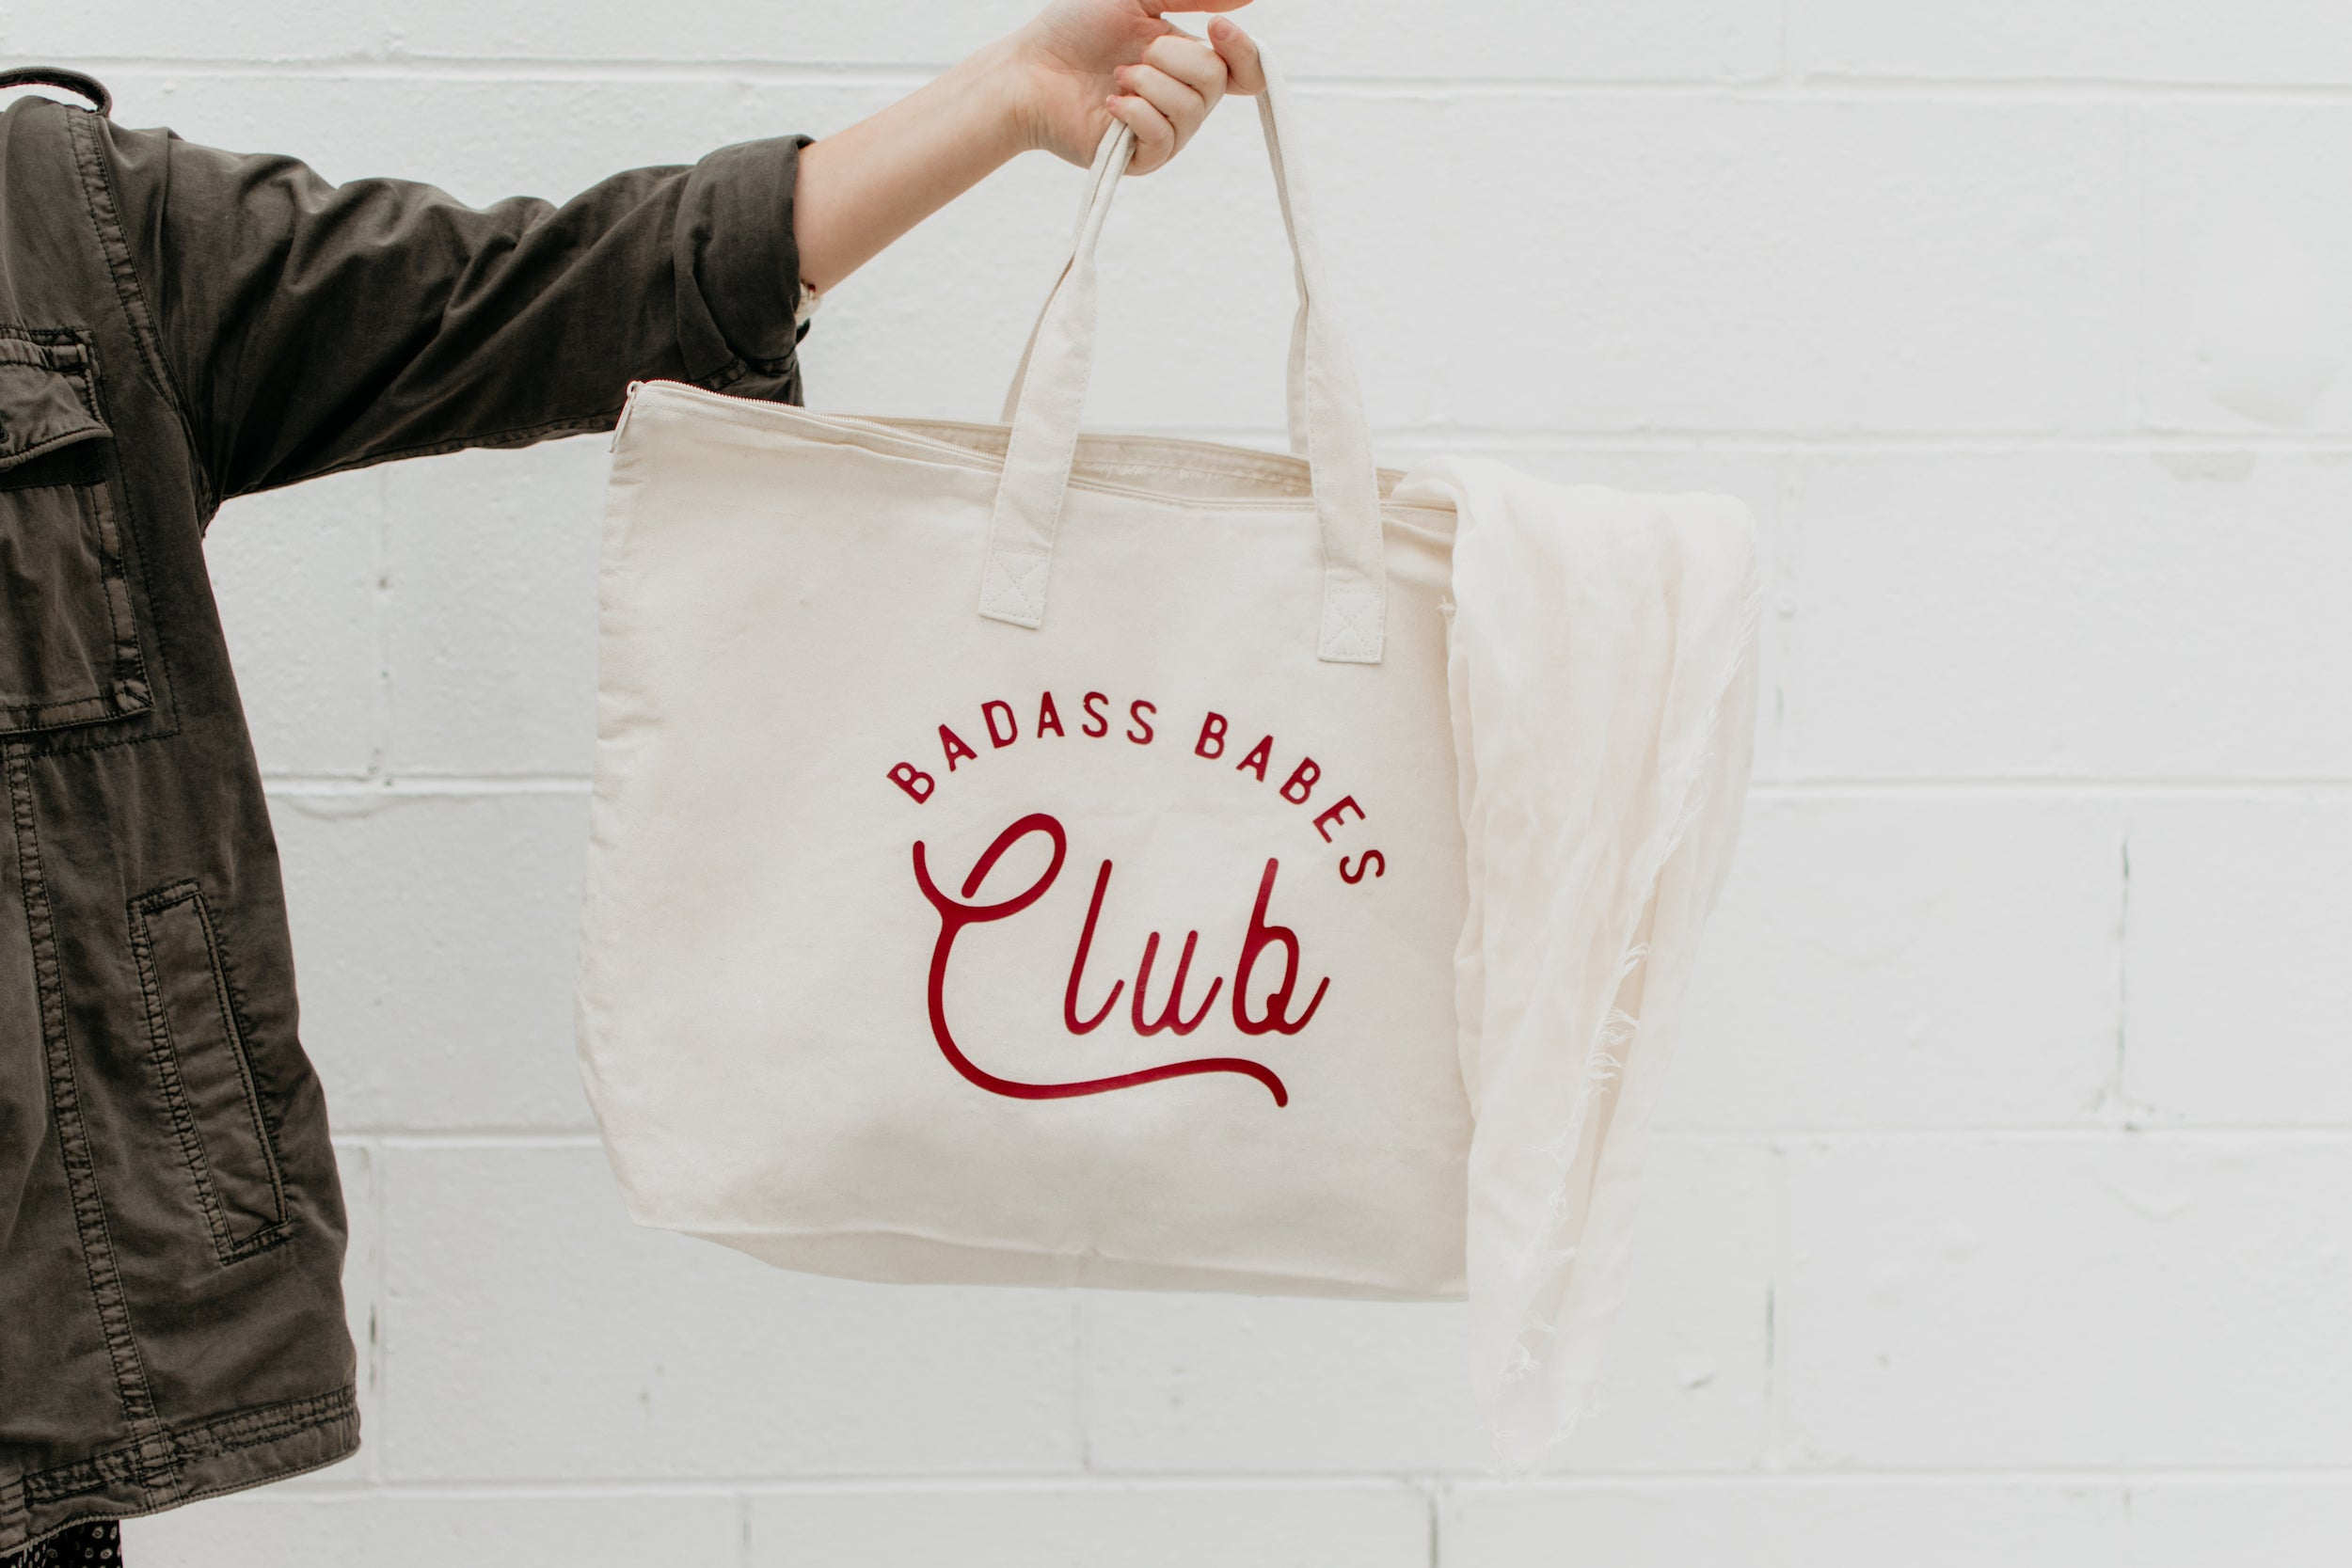 Badass Babes Club Large Canvas Tote Bag - Polished Prints